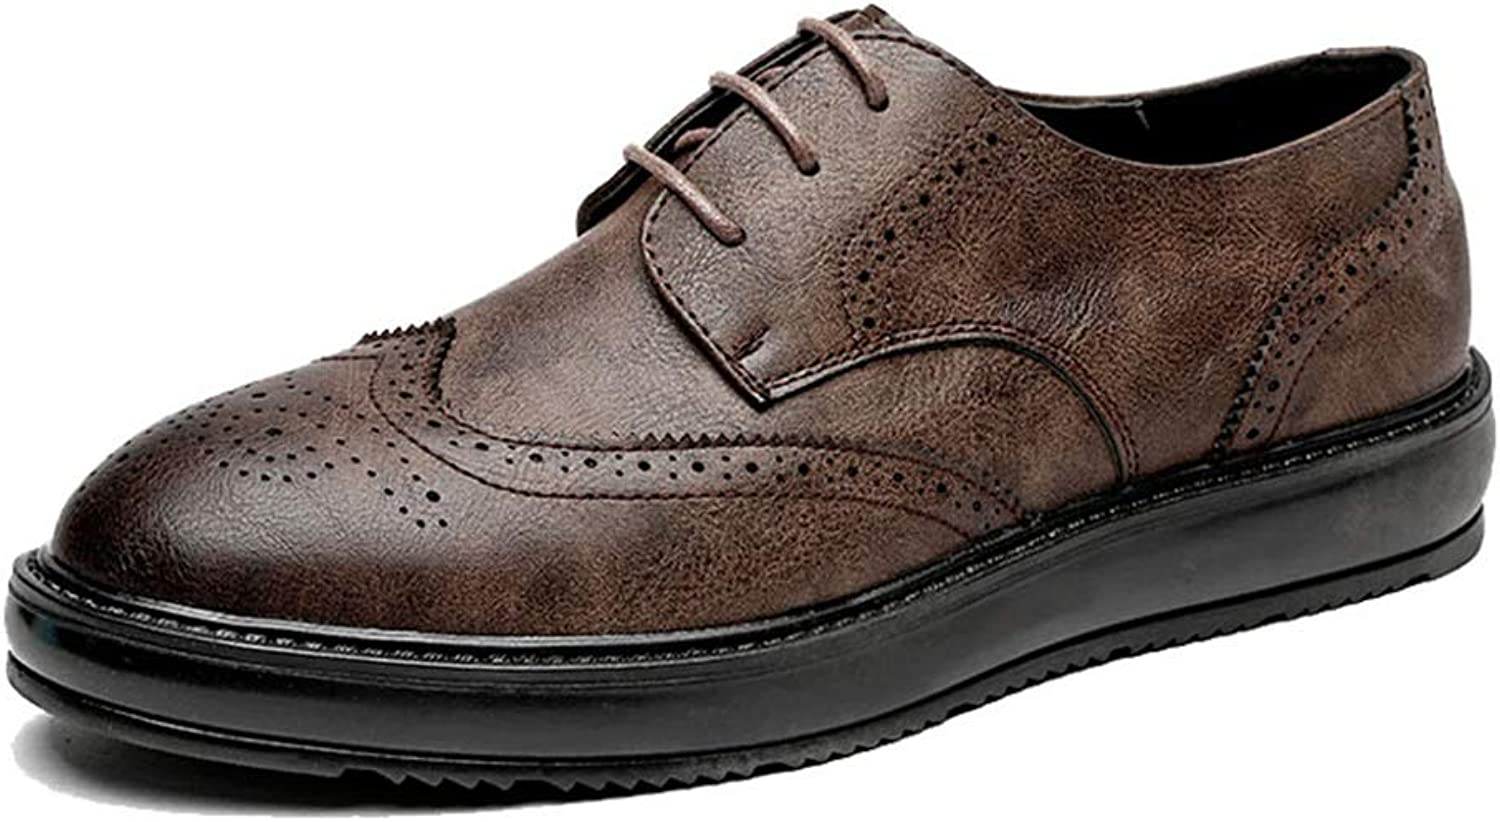 JUJIANFU-shoes Men's Simple Fashion Oxford Casual Classic Carvings Breathe British Style Outsole Brogue shoes(Patent Leather Optional)